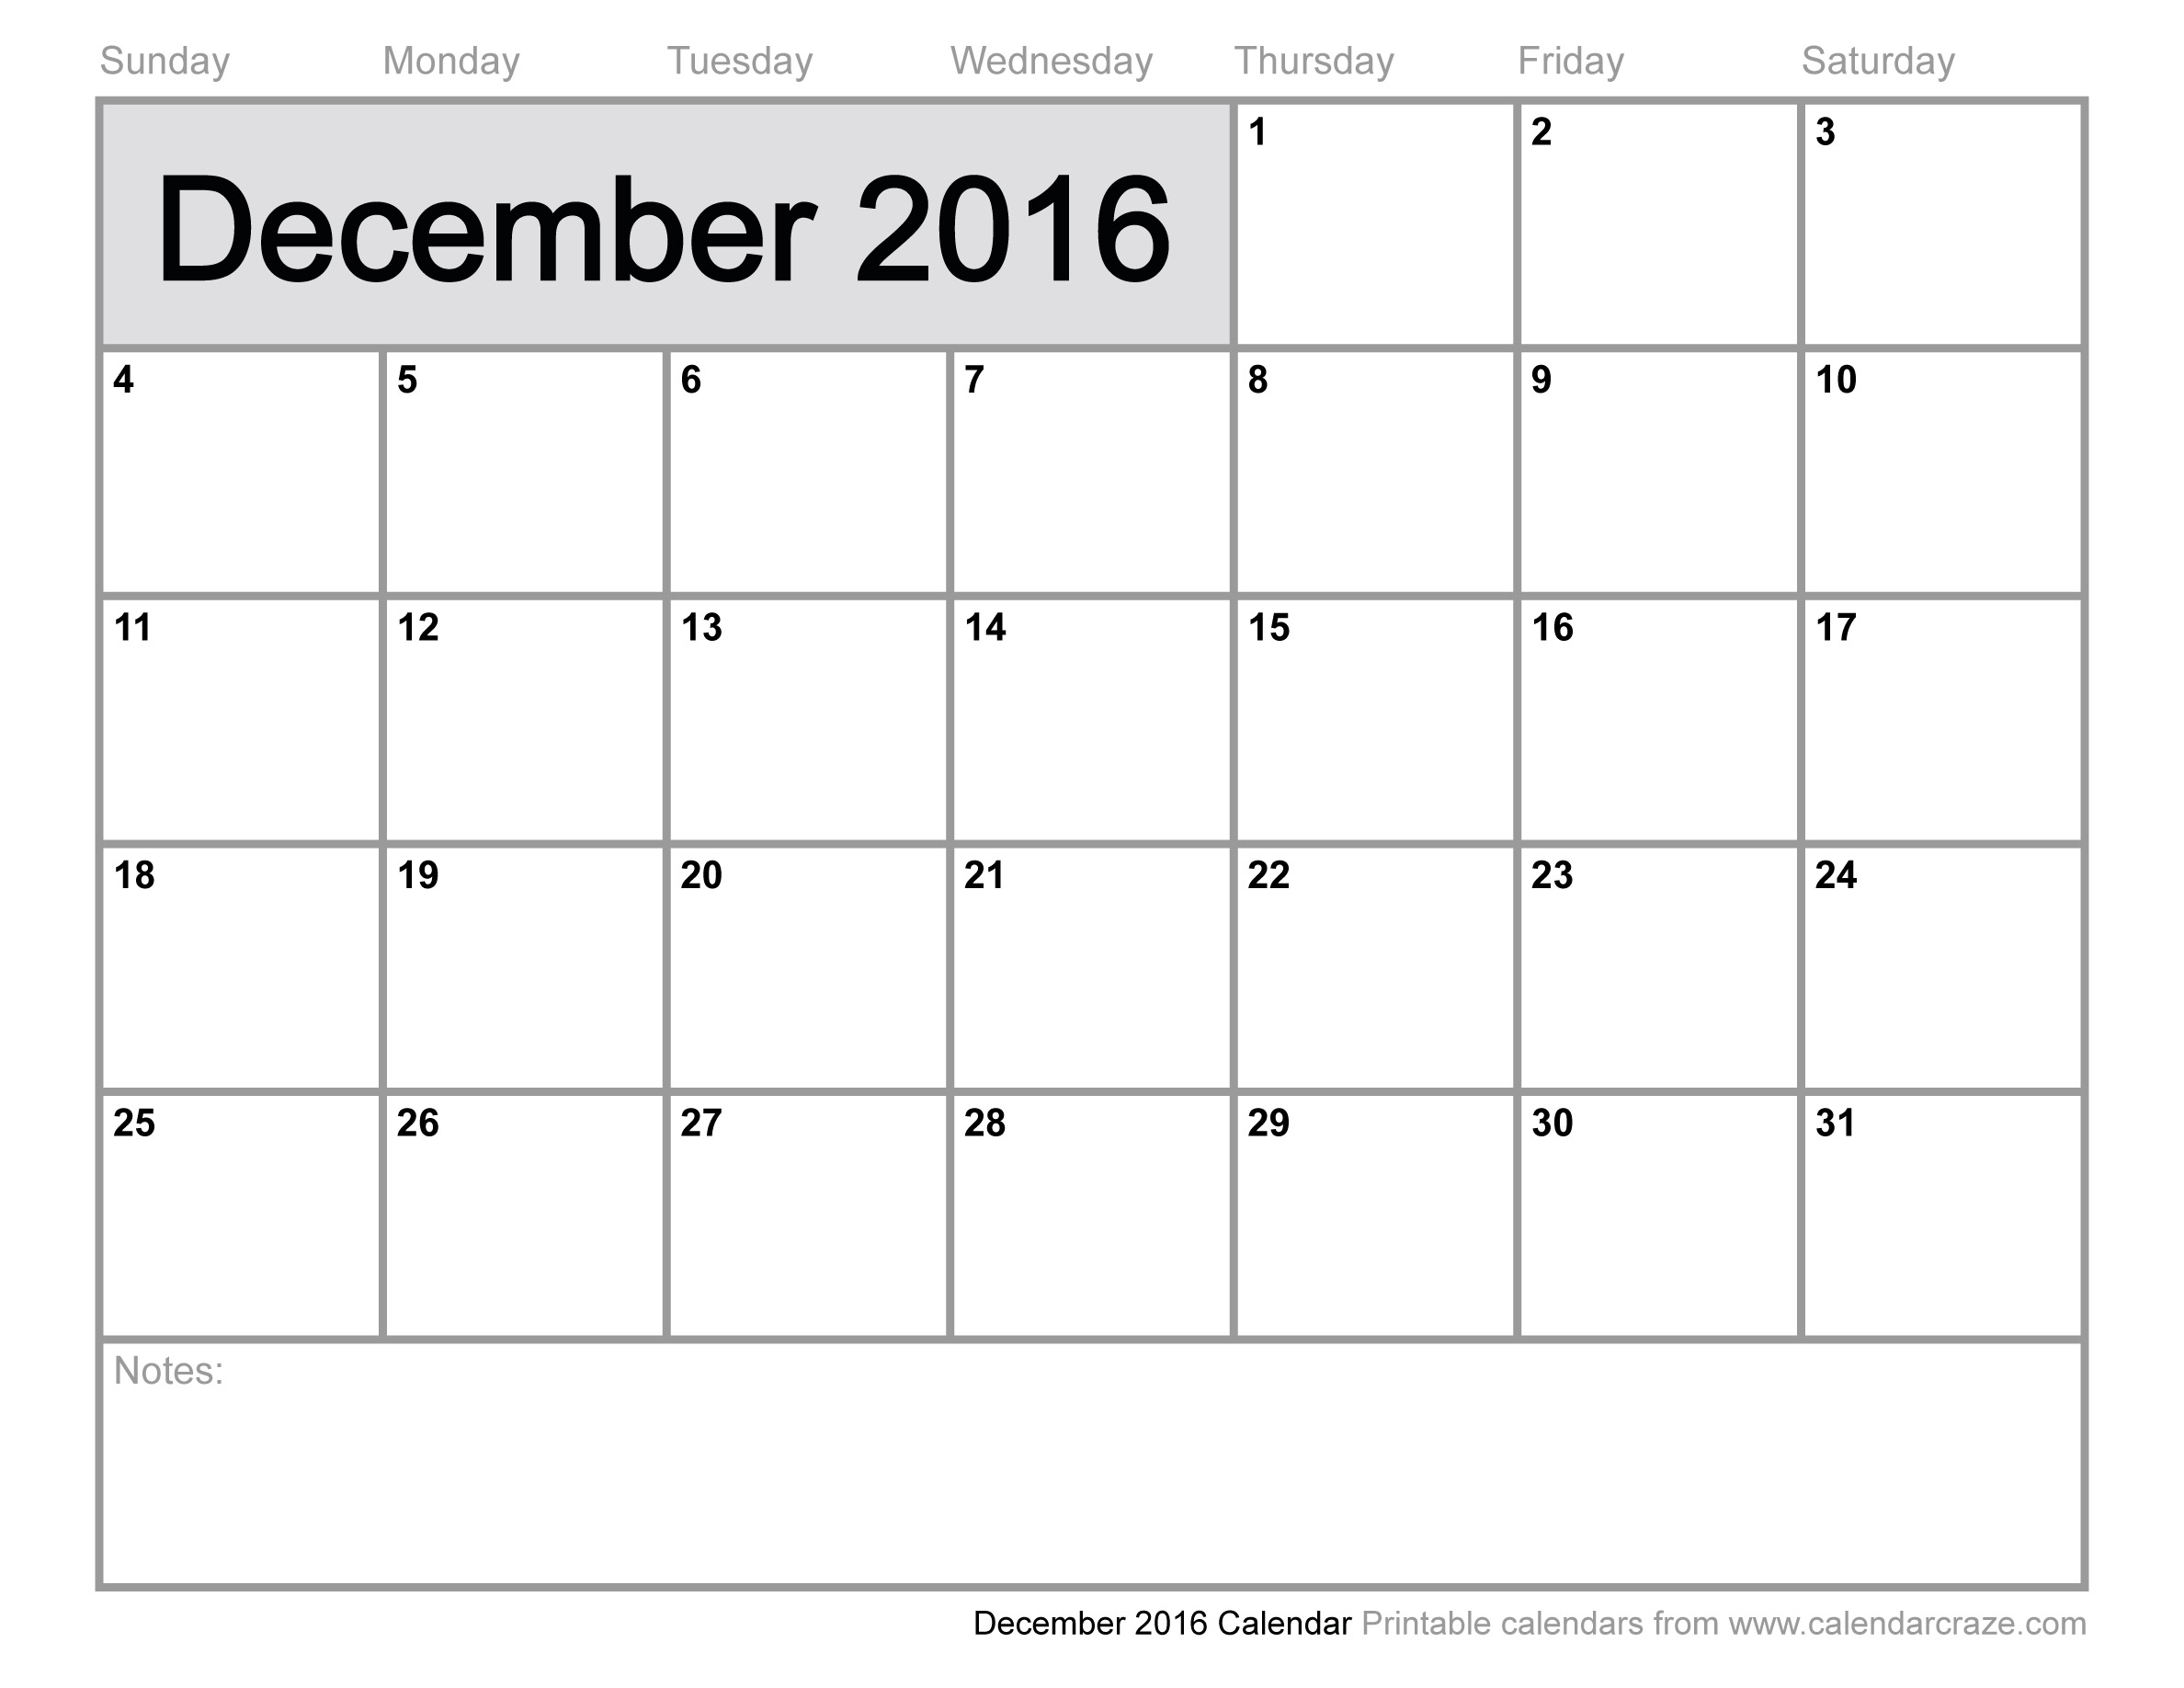 7 Images of December 2016 Calendar Printable Free